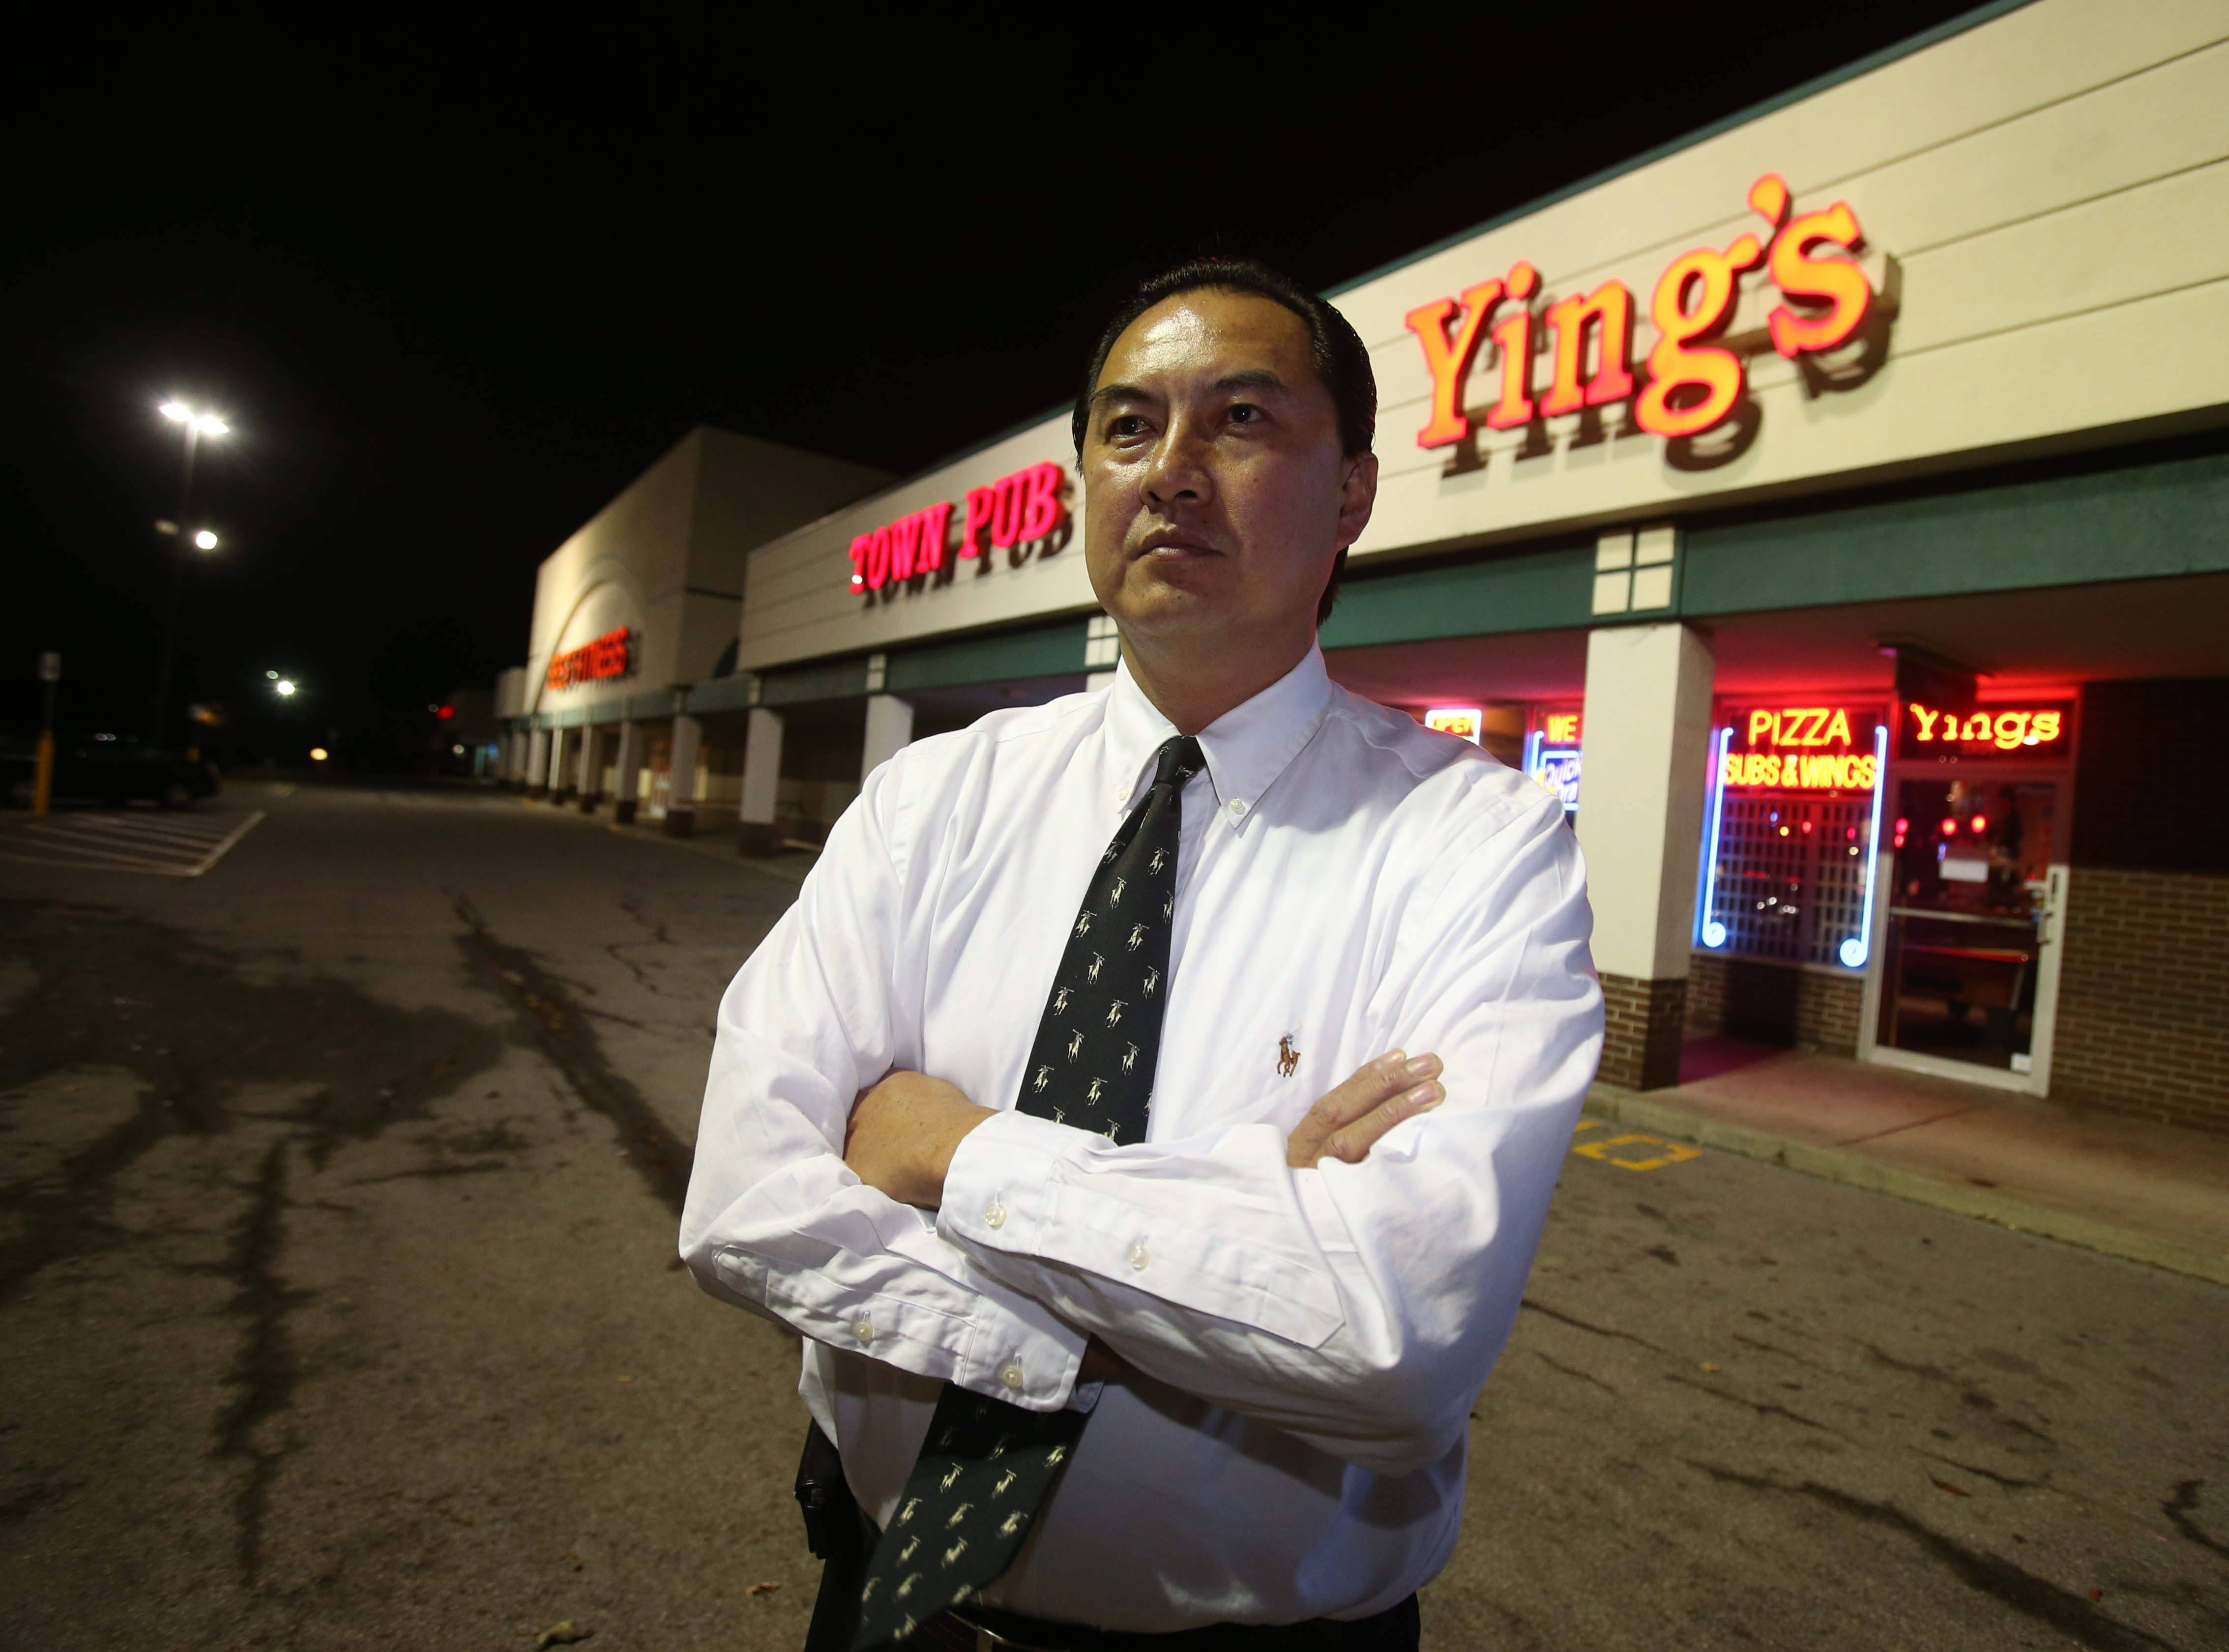 After the shooting in his restaurant's parking lot, Jimmy Ying was arrested – which he contends was police harassment.